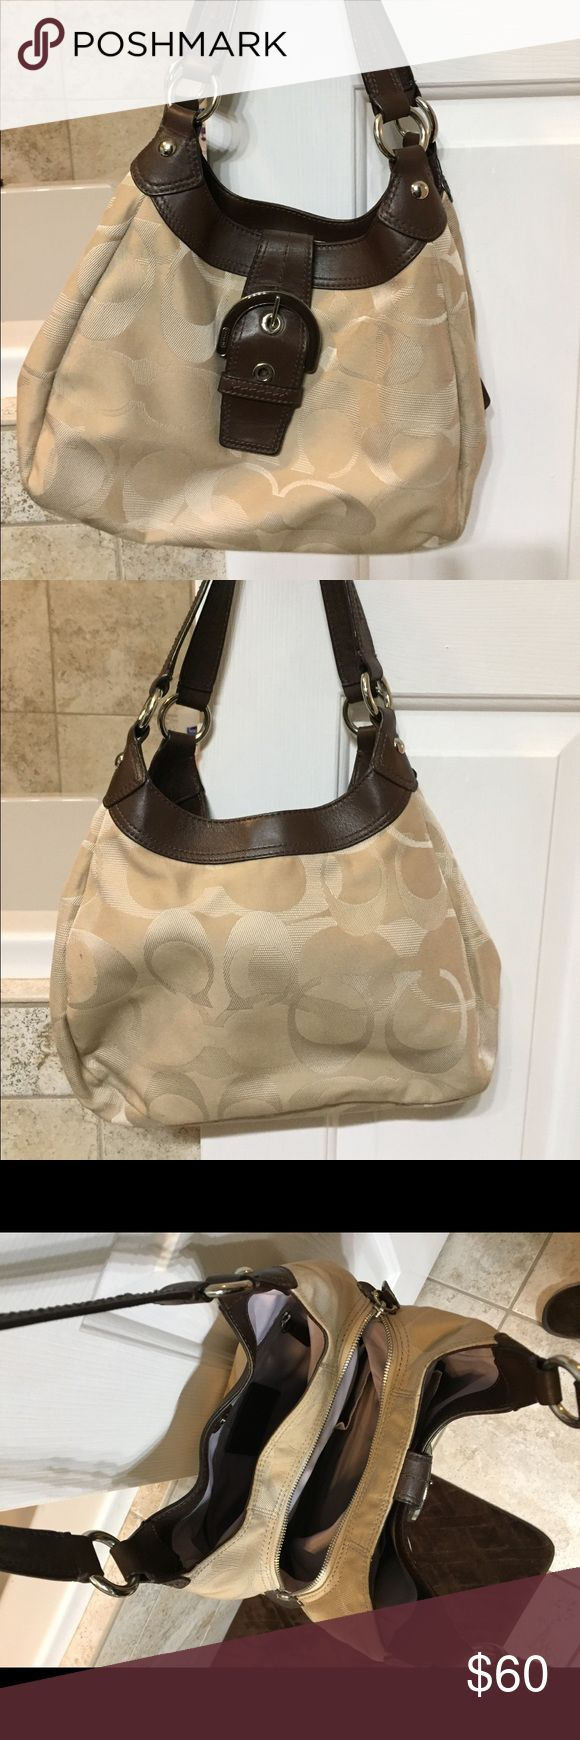 """Coach hobo bag Tan fabric with brown leather trim. Good used condition. Lots of organizational options with 3 different compartments- 2 snap closed and middle zippers closed. Light wear/small stains on bottom. I have not tried to clean. Otherwise in great shape.  Approximately 12""""Lx9""""Hx5""""W. 18""""L with handle Coach Bags Hobos"""